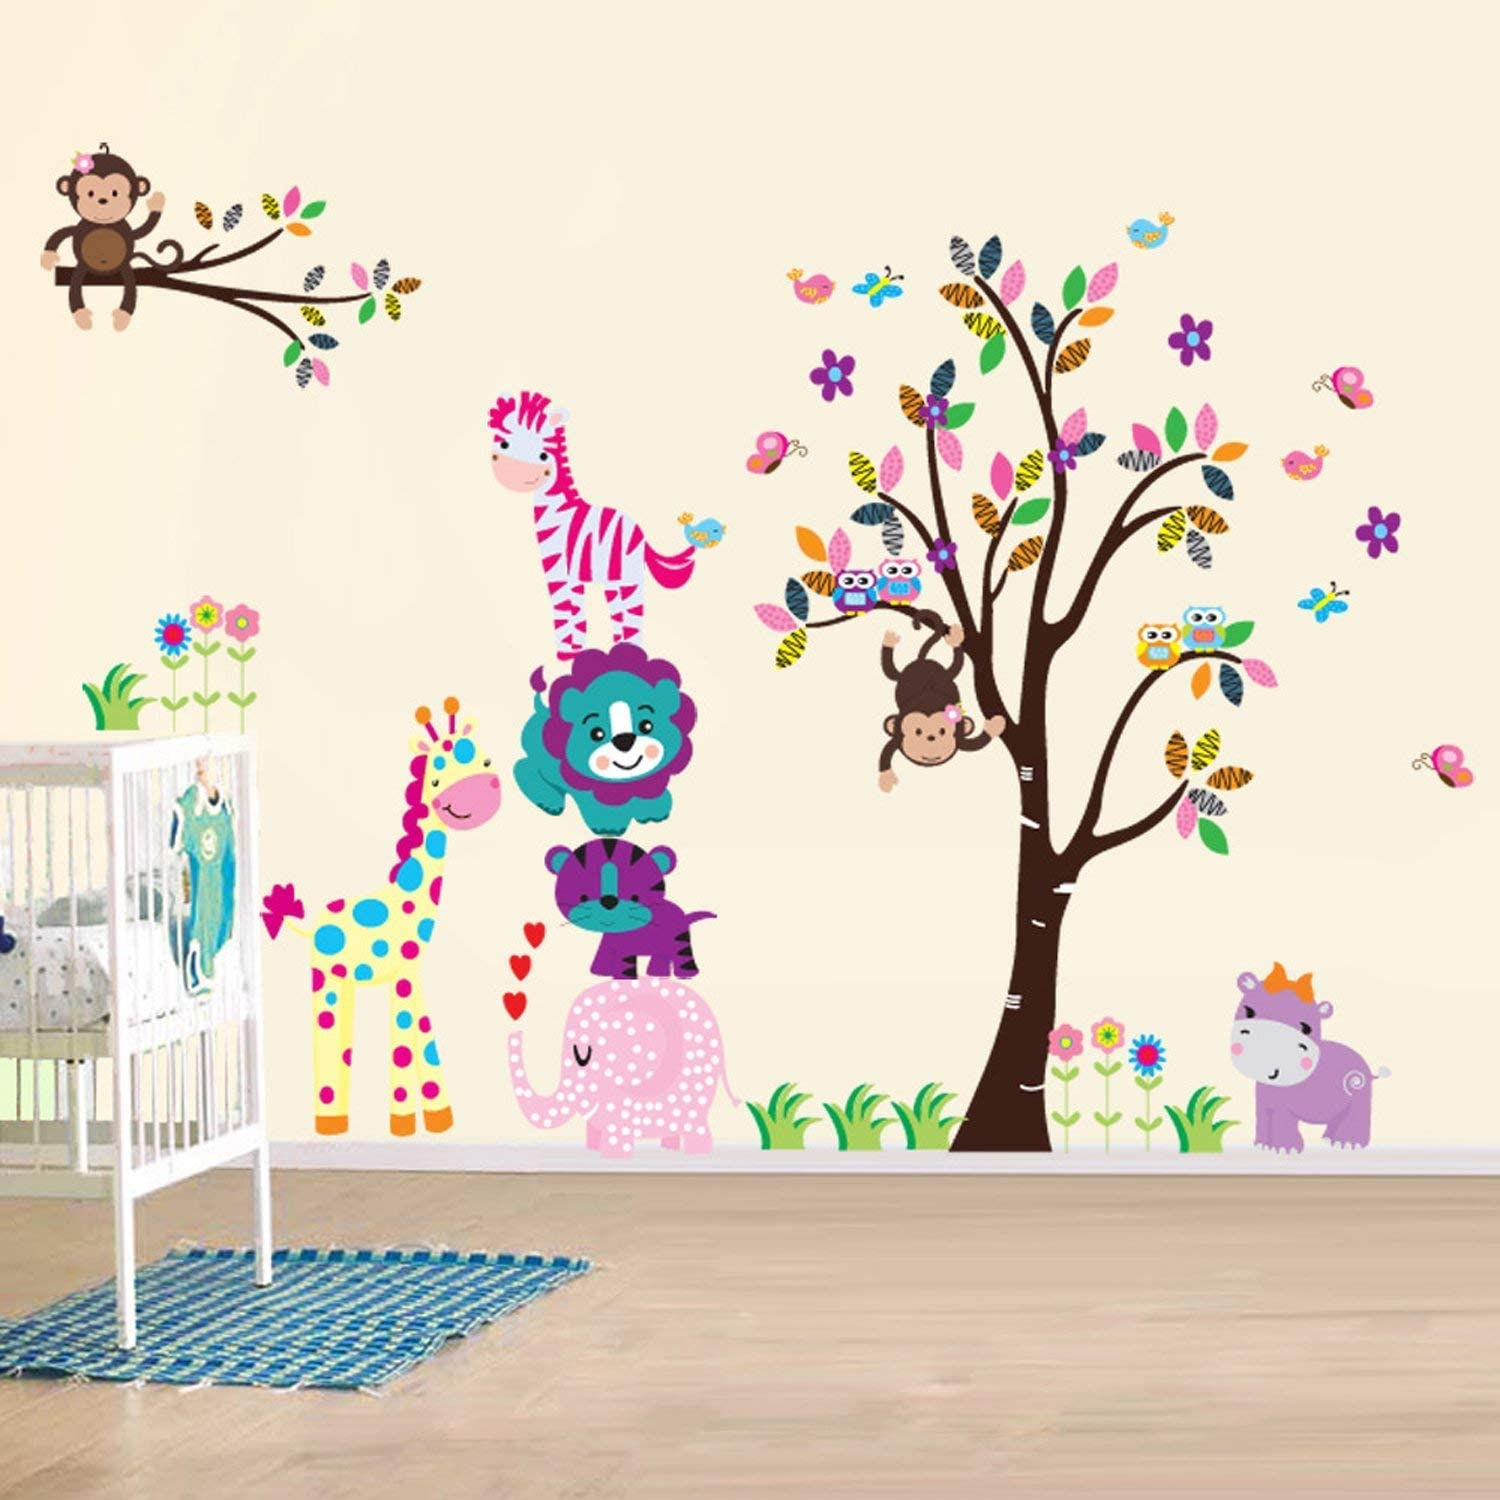 Animals Mirror Wall Sticker Art Mural Decal Home Room Decor Removable DIY c